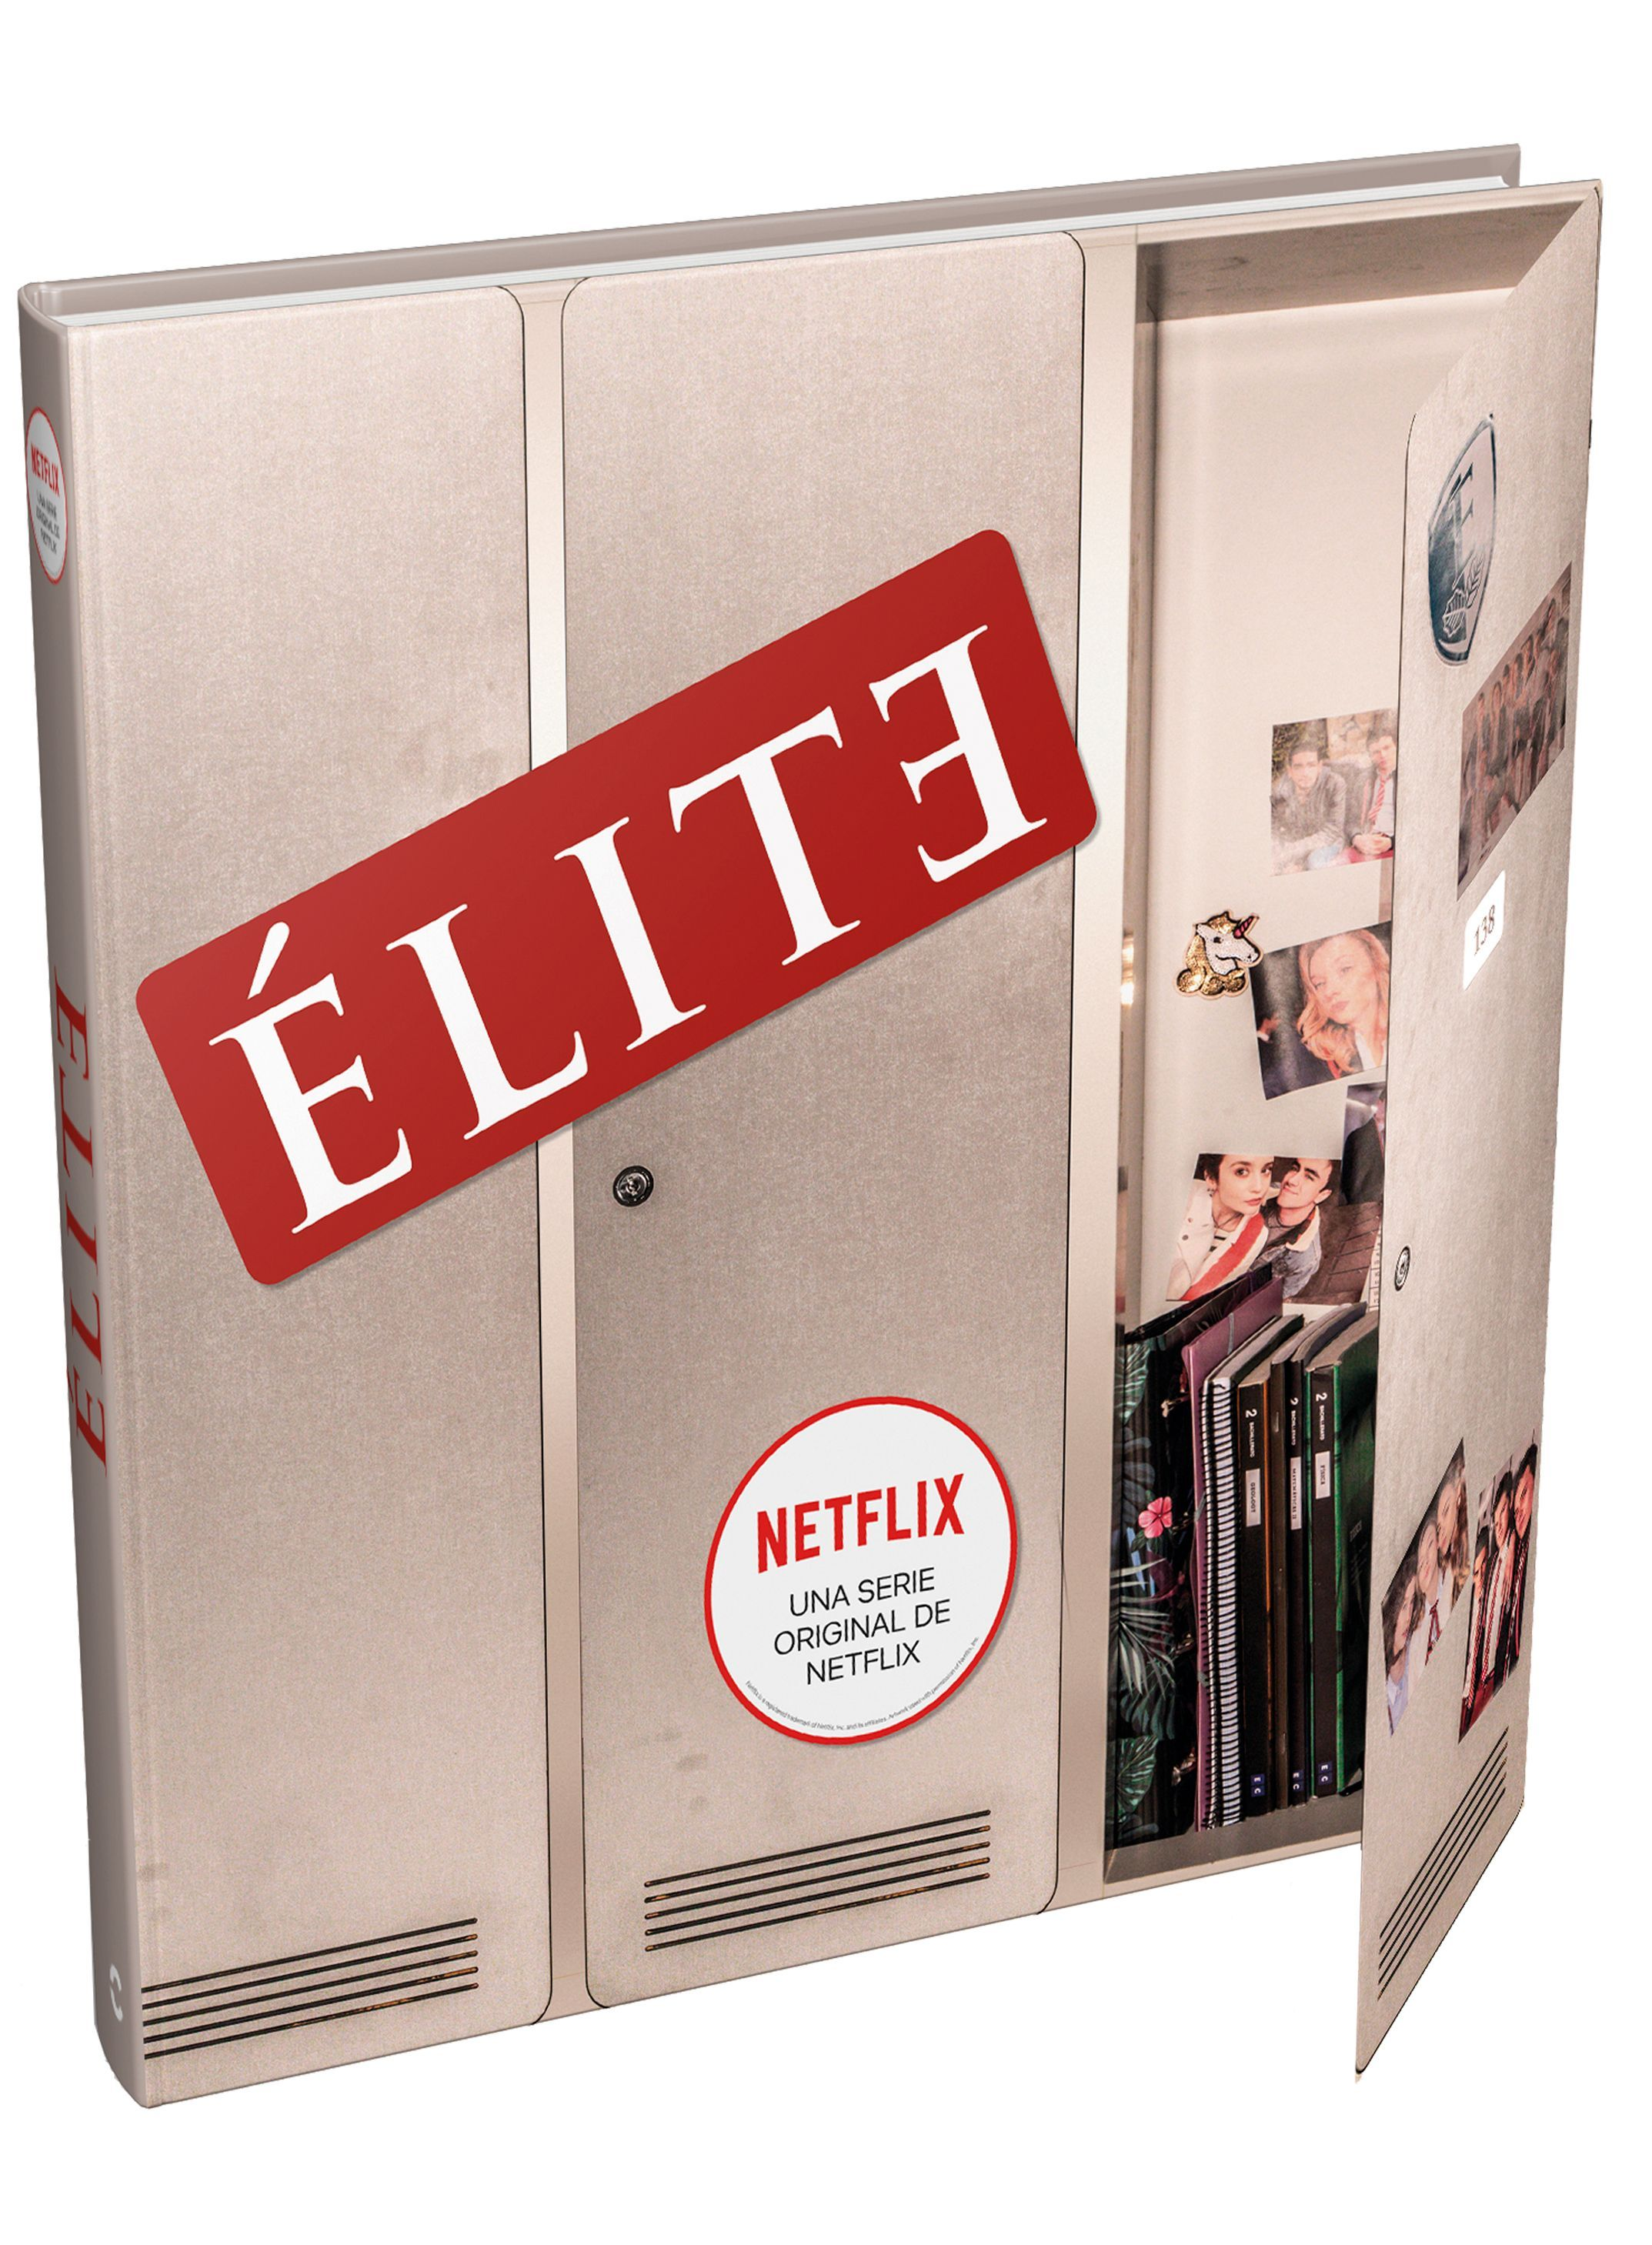 ELITE EL FANBOOK OFICIAL.